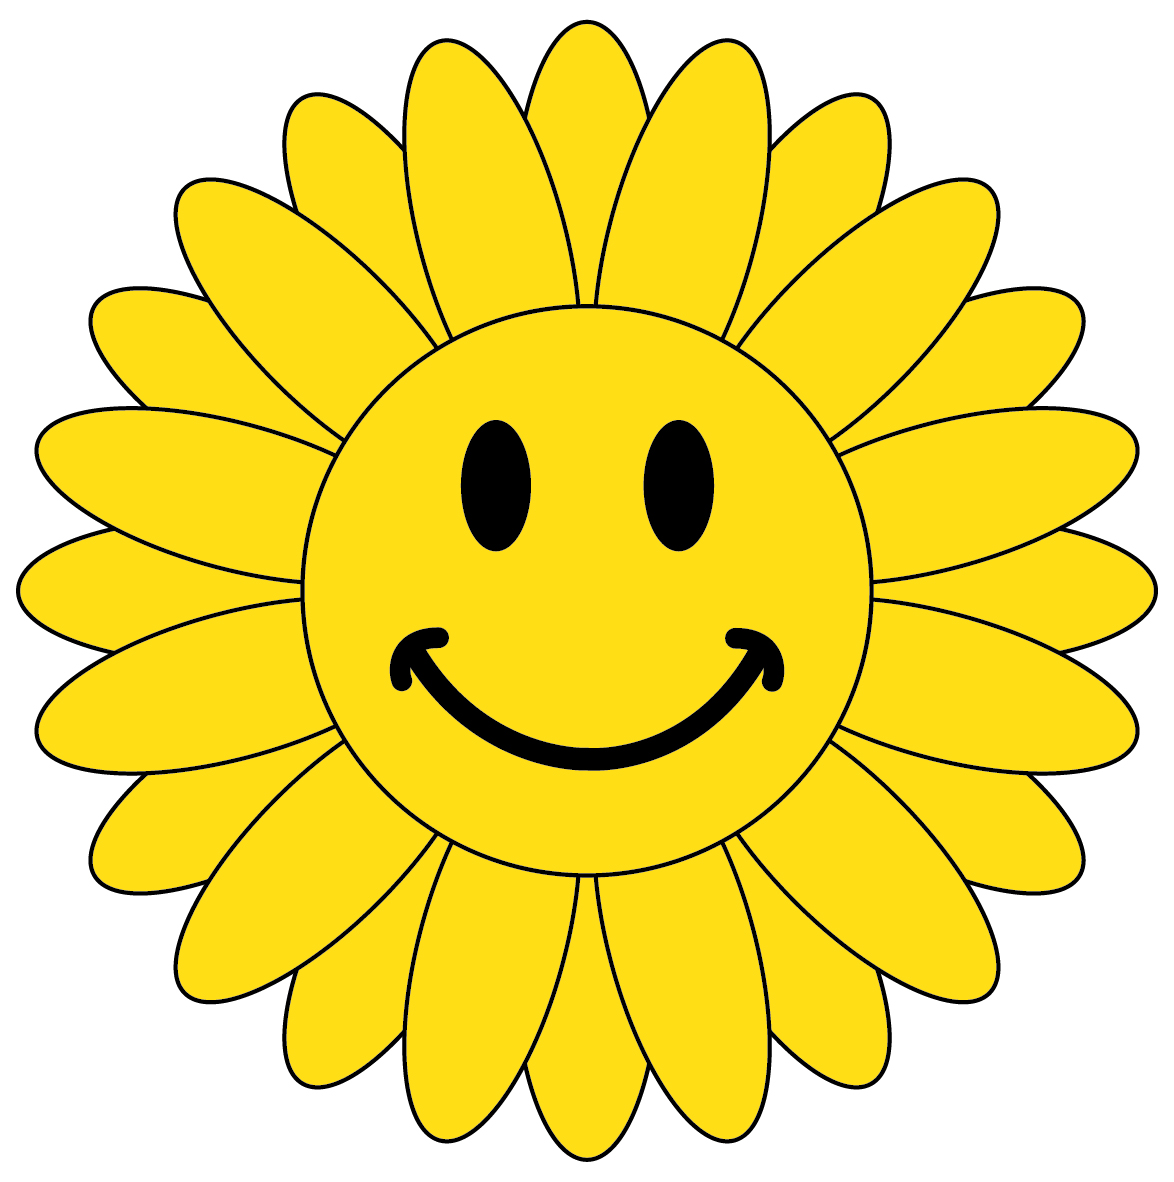 Smiley Face Flower Clipart | Clipart Panda - Free Clipart ...